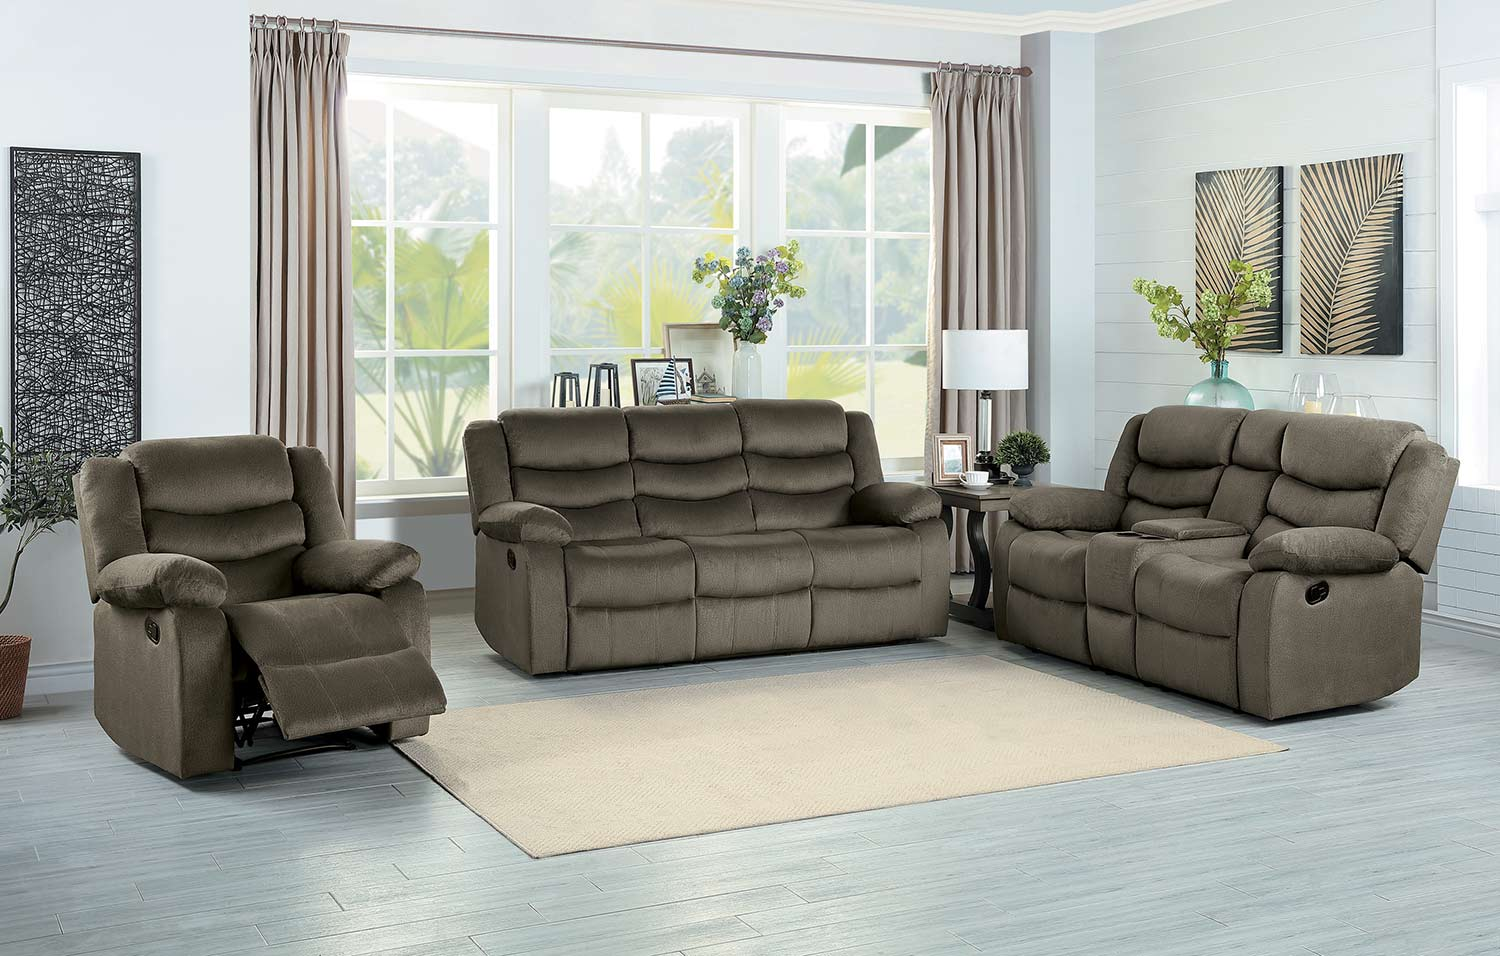 Homelegance Discus Reclining Sofa Set - Brown